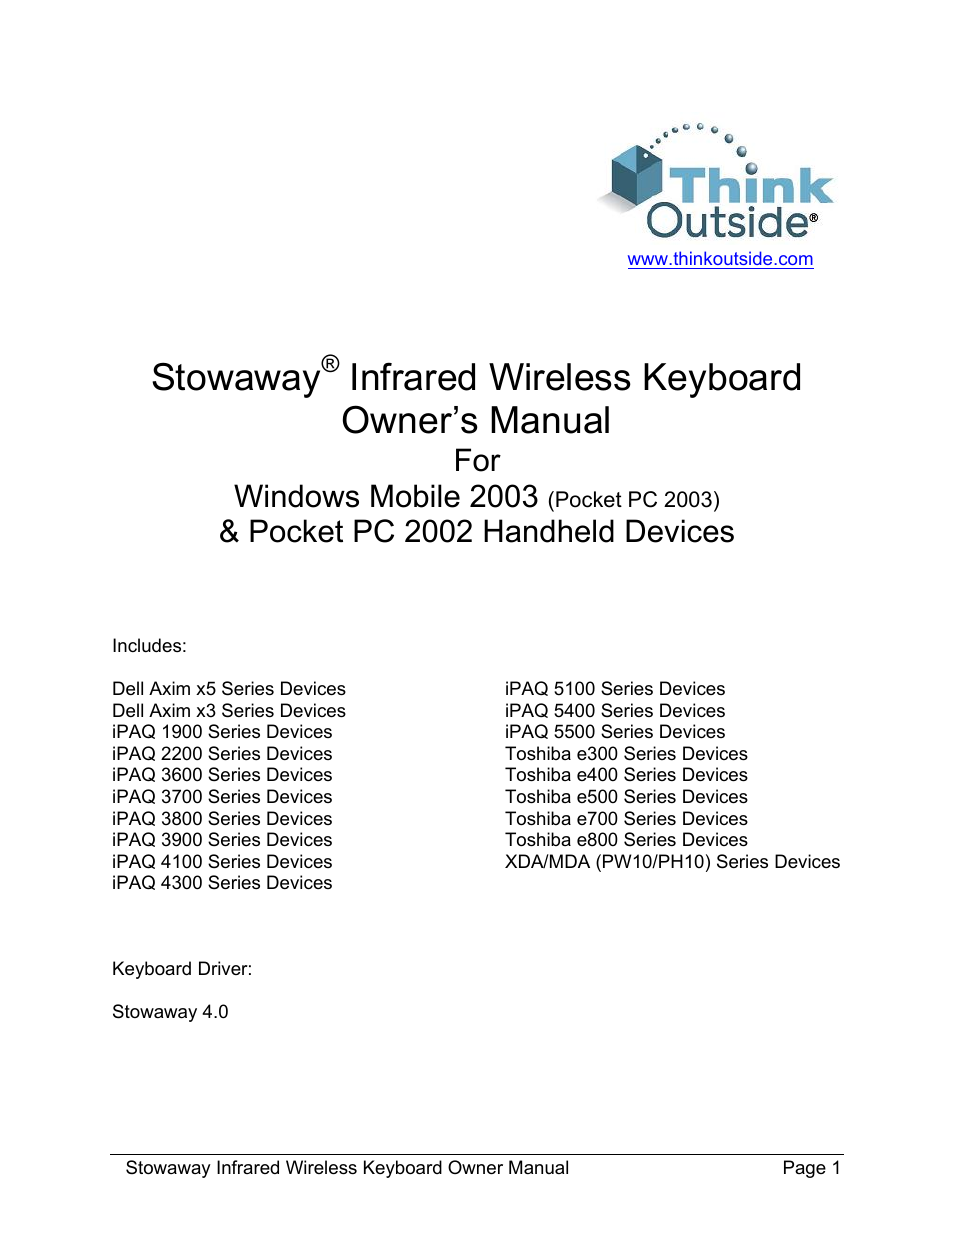 think outside stowaway 101797e user manual 18 pages rh manualsdir com Windows Mobile 2002 Windows 2004 Mobile